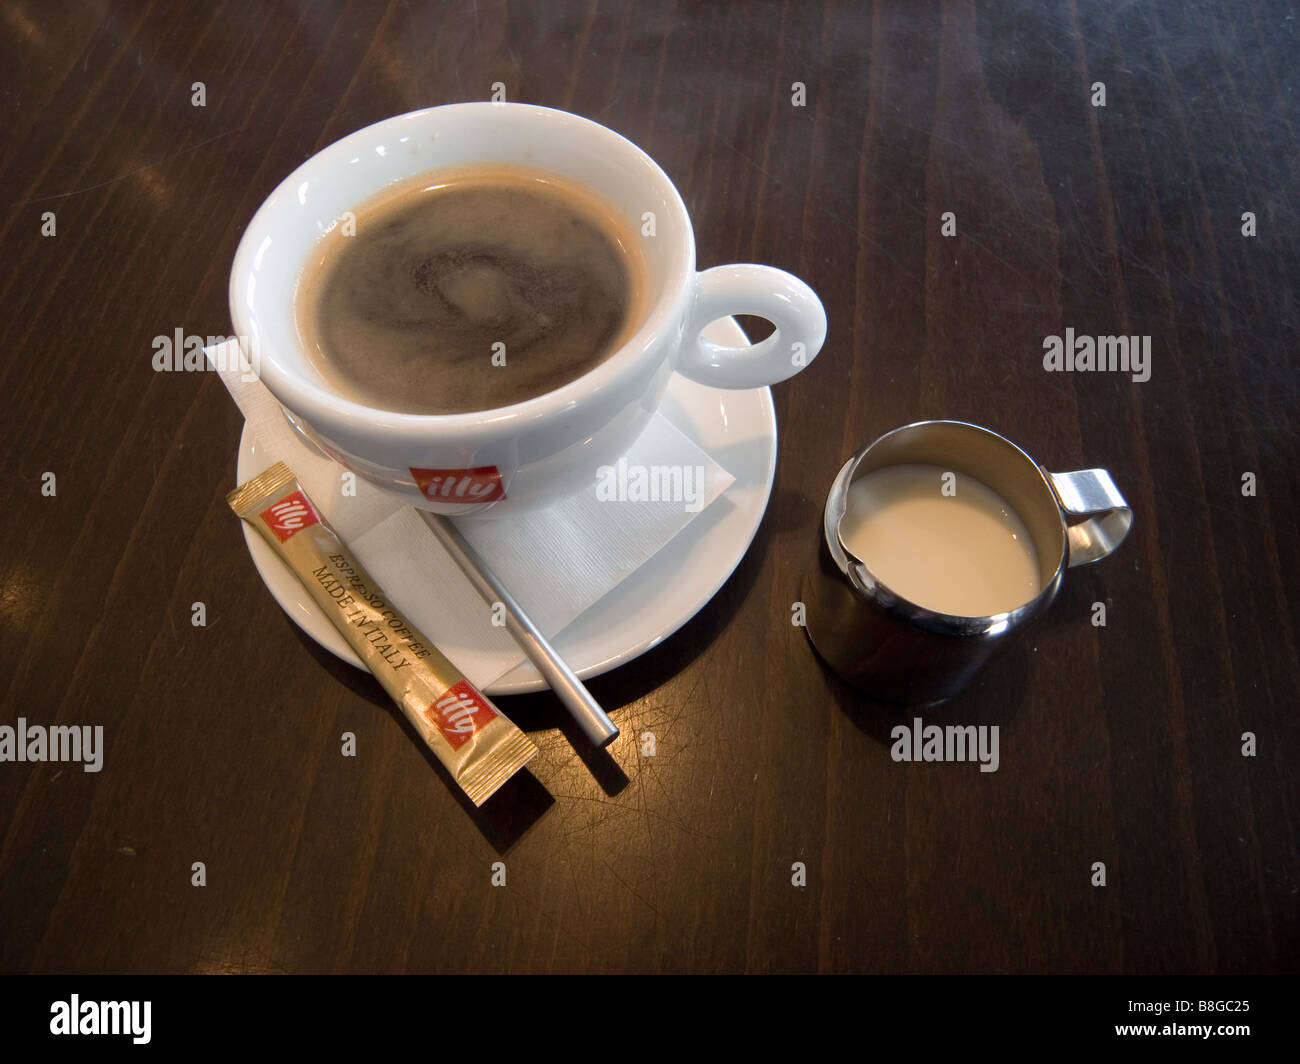 Regular Americano with cold milk cup of Illy coffee - Stock Image